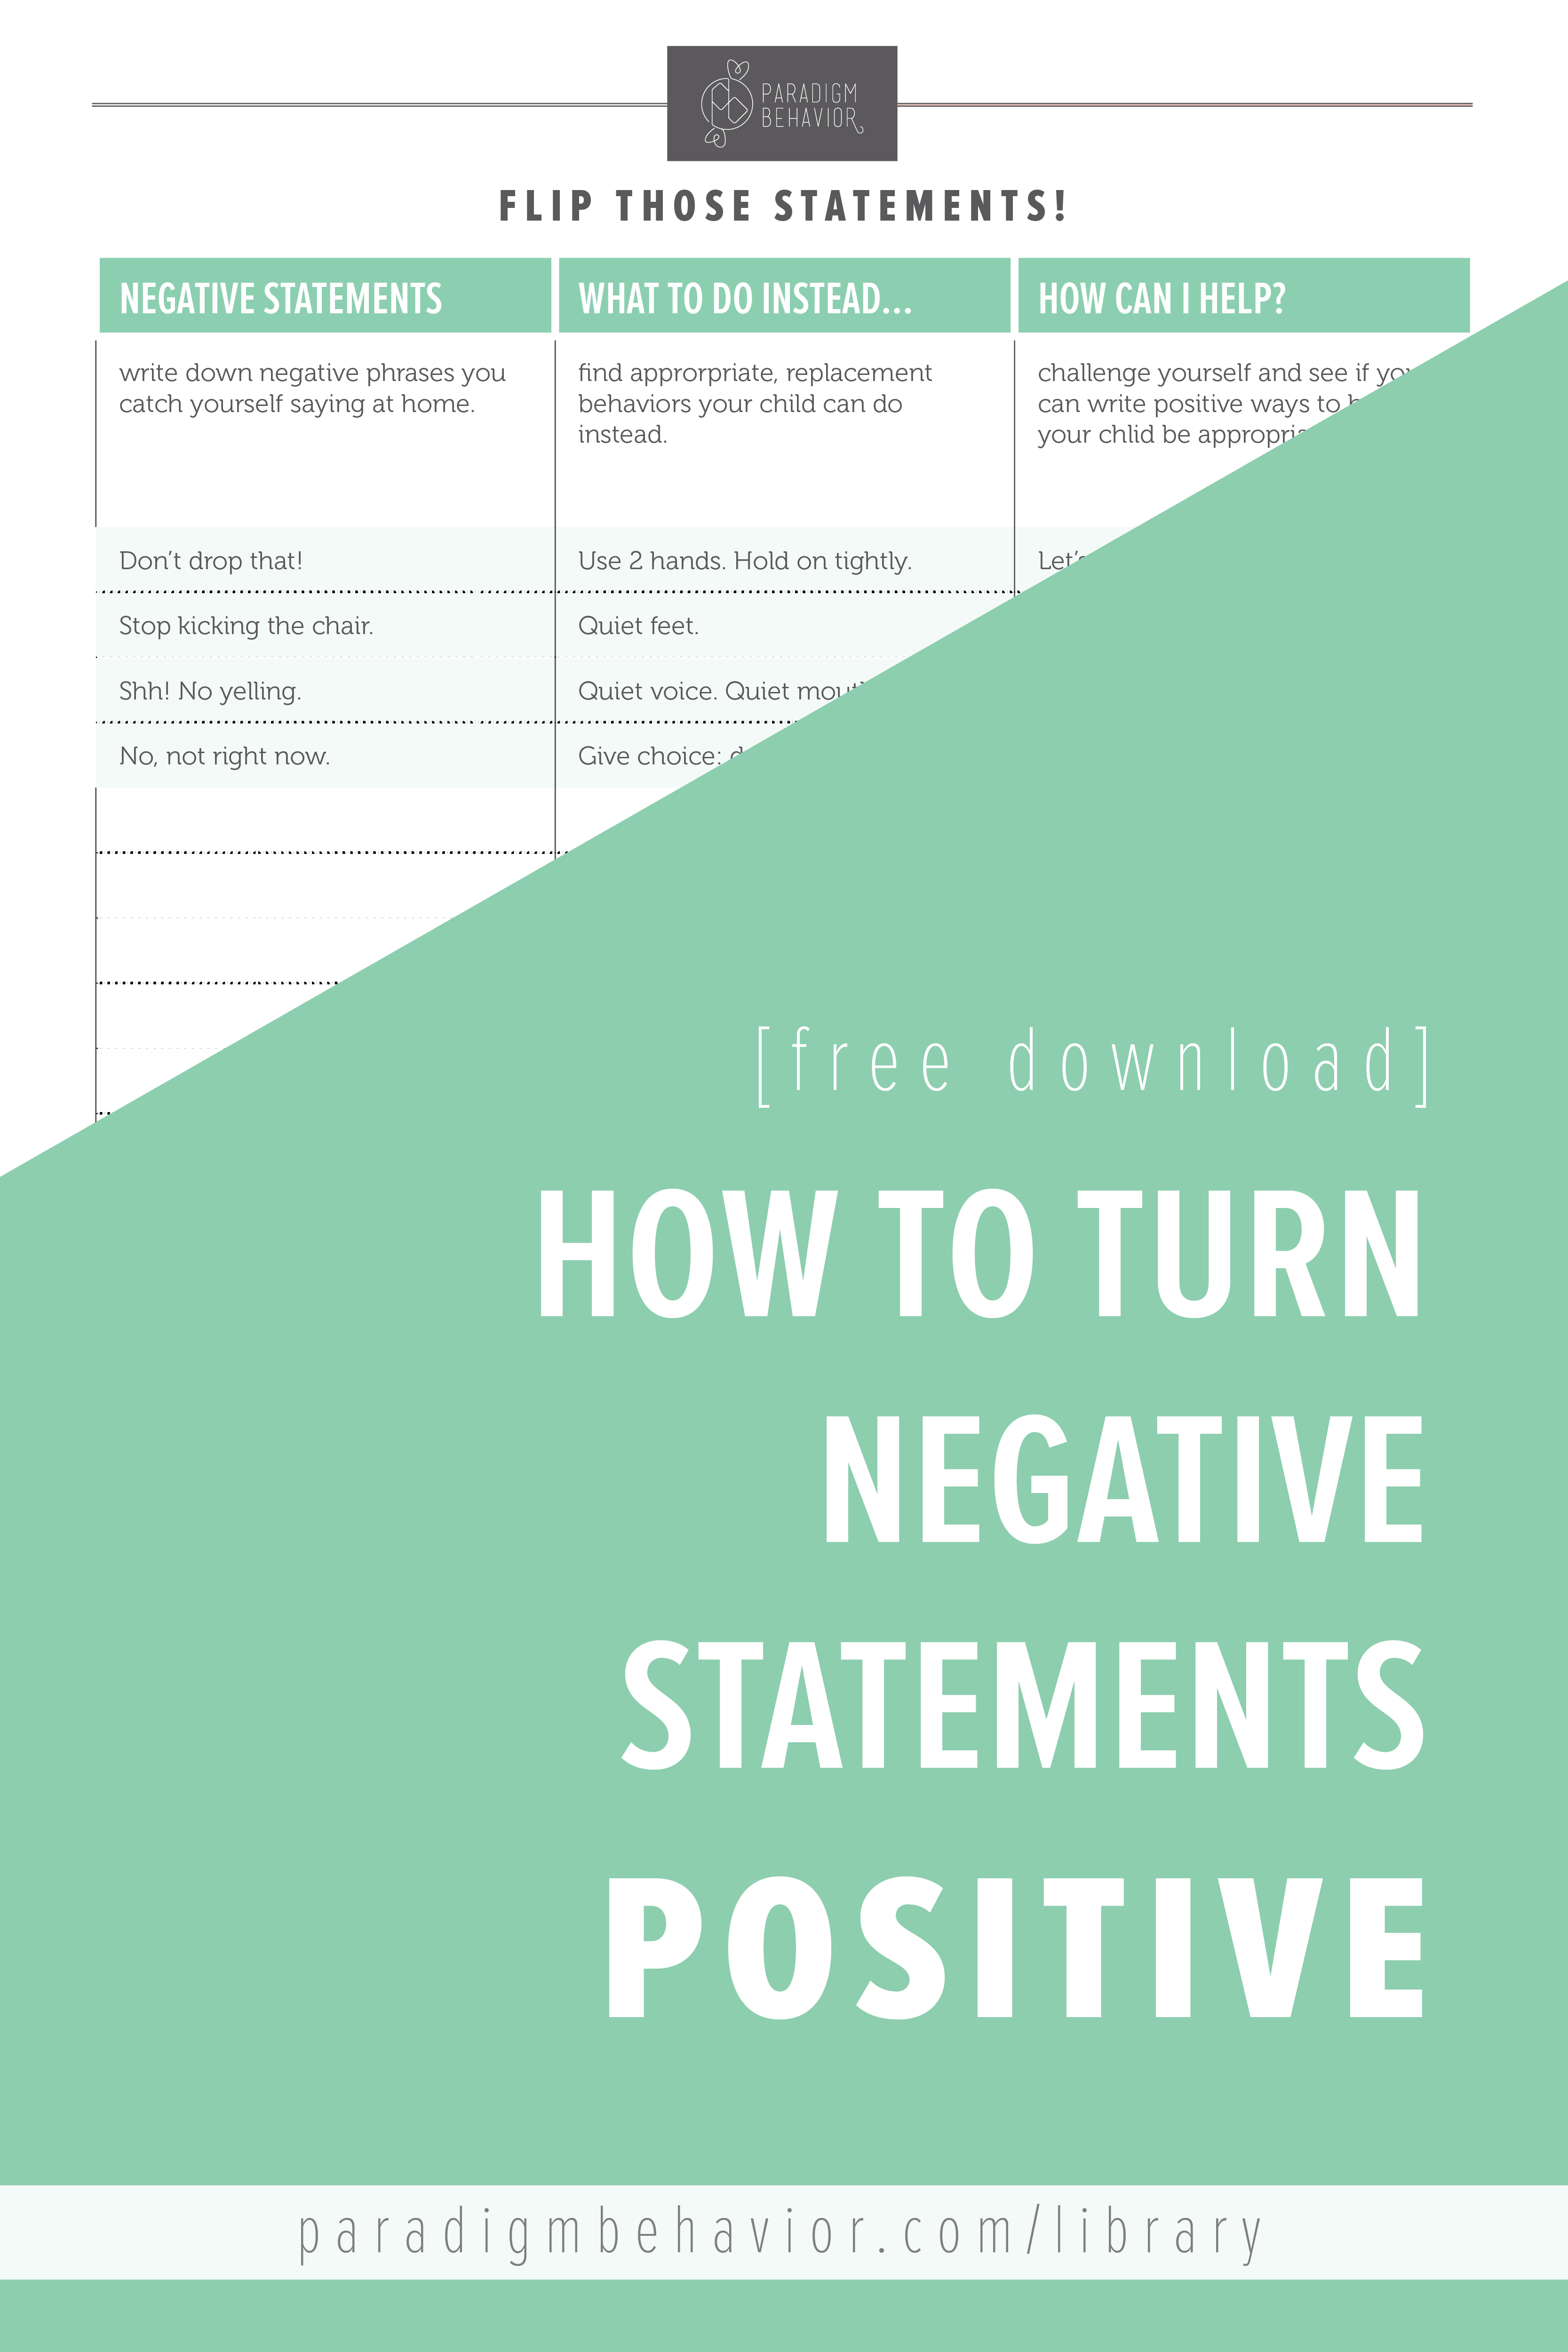 Flipping Negative Statements